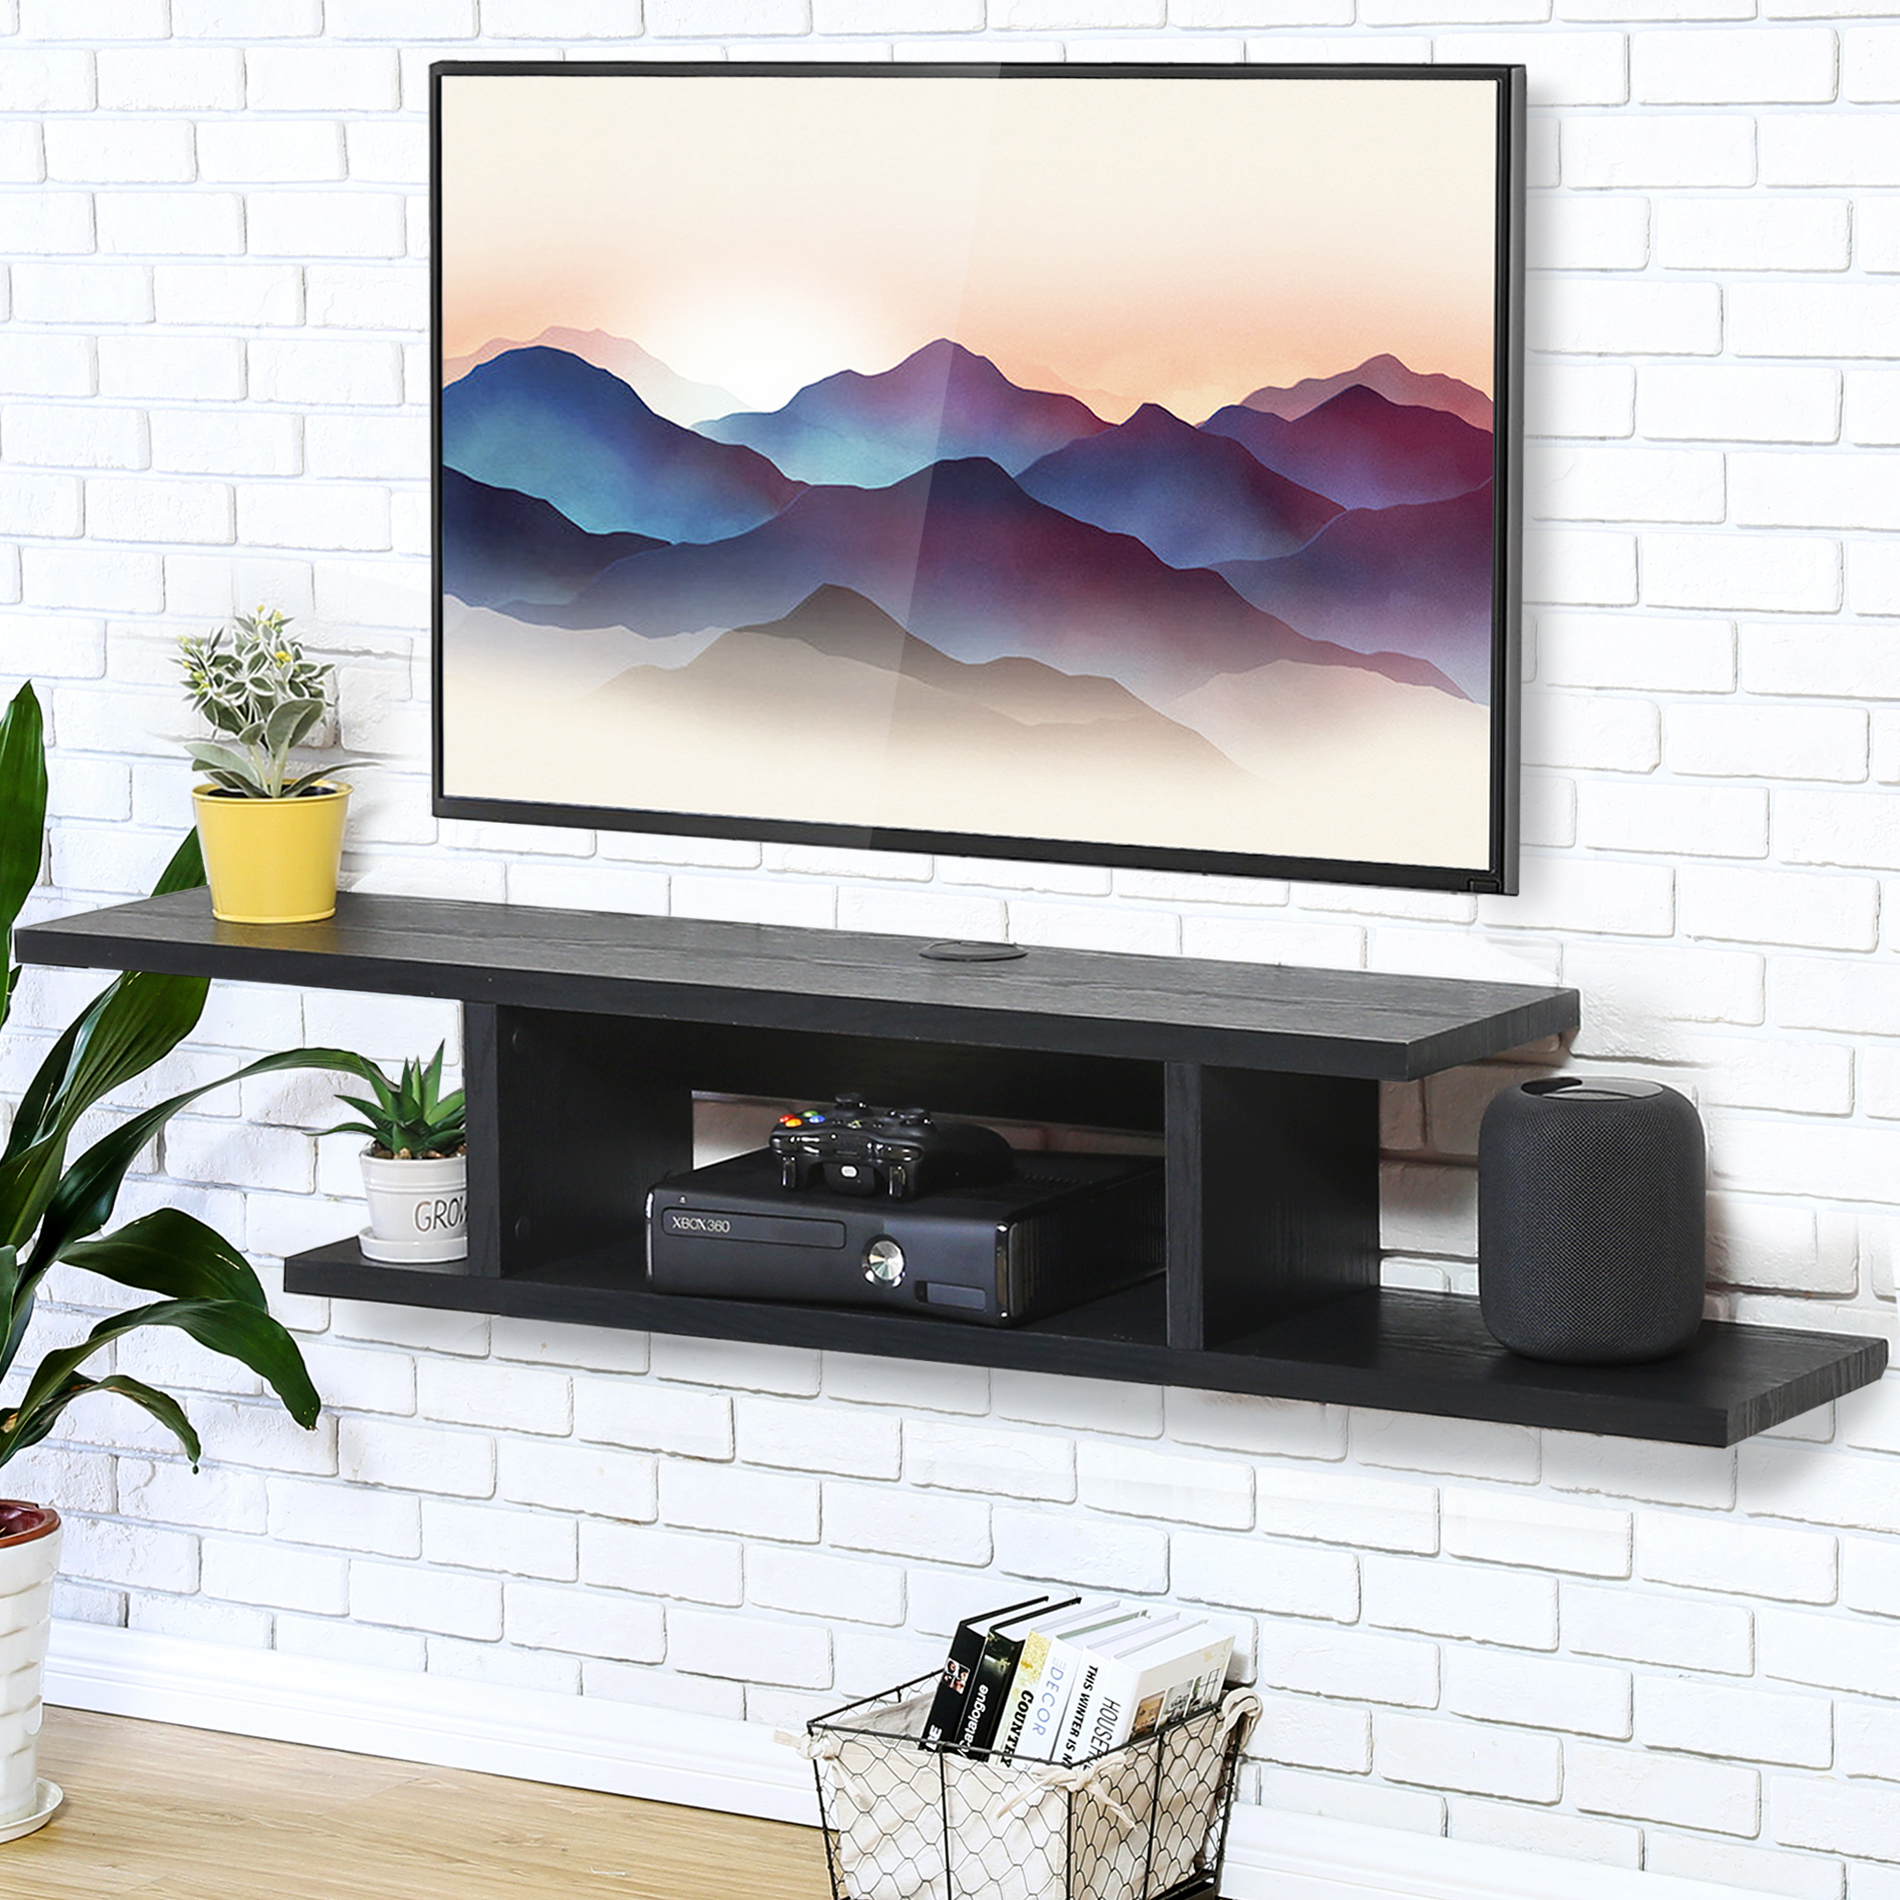 FITUEYES Wall Mounted Audio/Video Console wood grain Wooden TV Stand